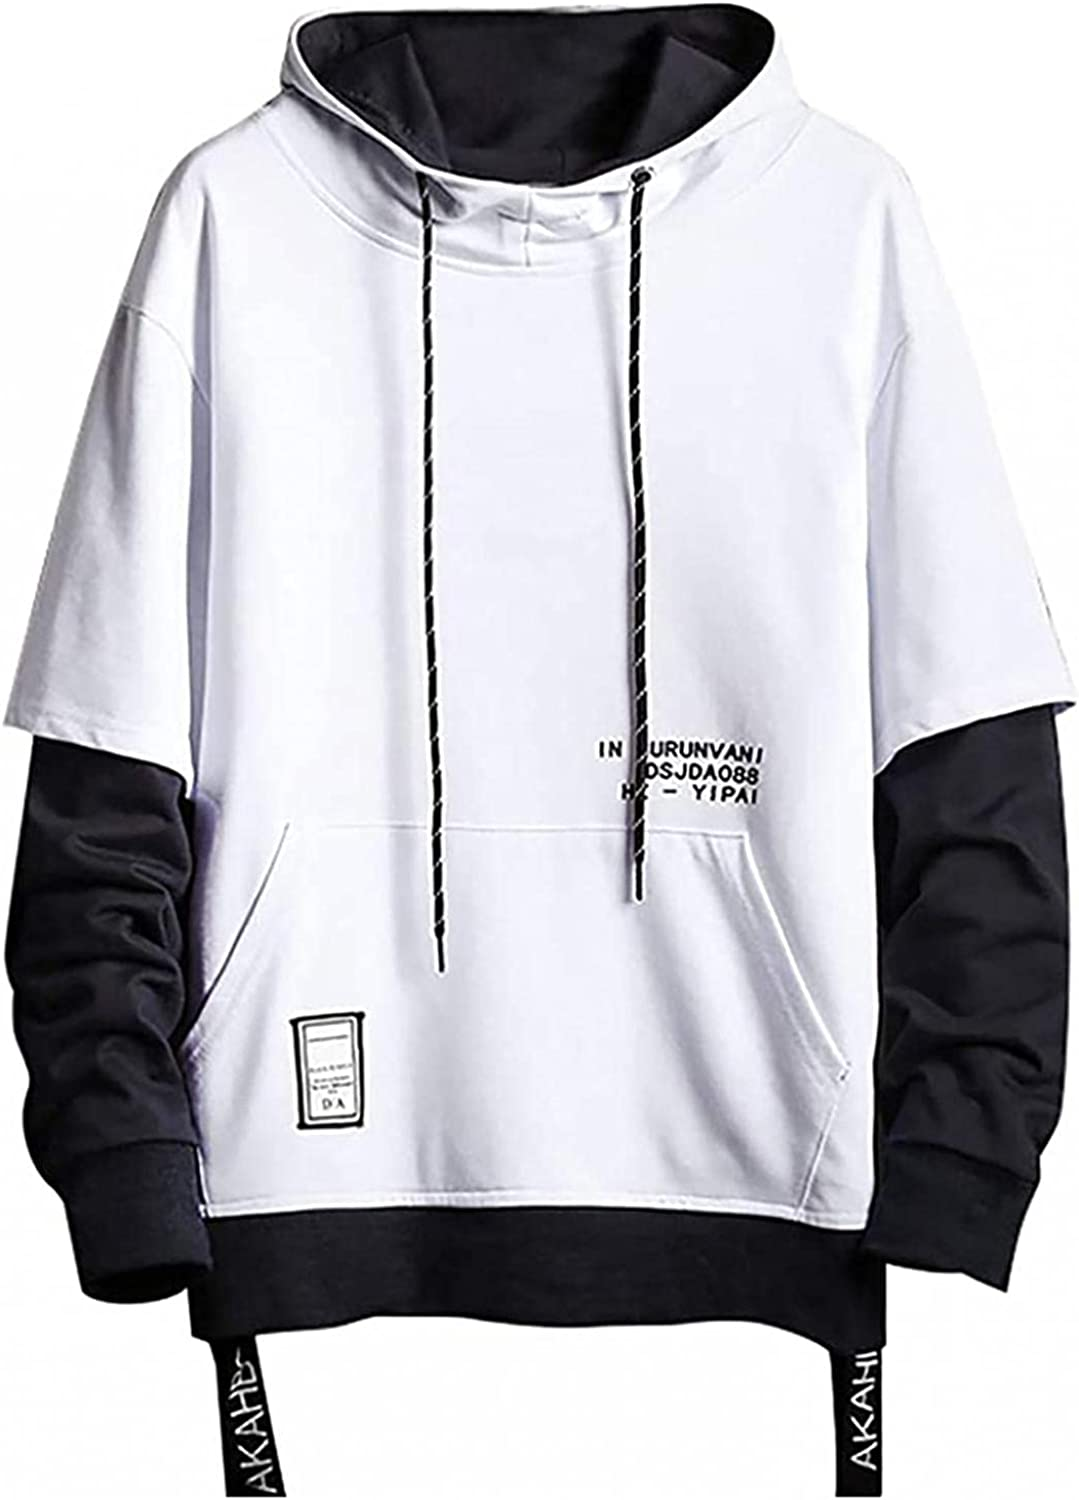 Men's Pullover Hooded Tops, Novelty Trendy Pullover Loose Casual Long Sleeve Fake 2 Pack Hooded Pullover Sweater